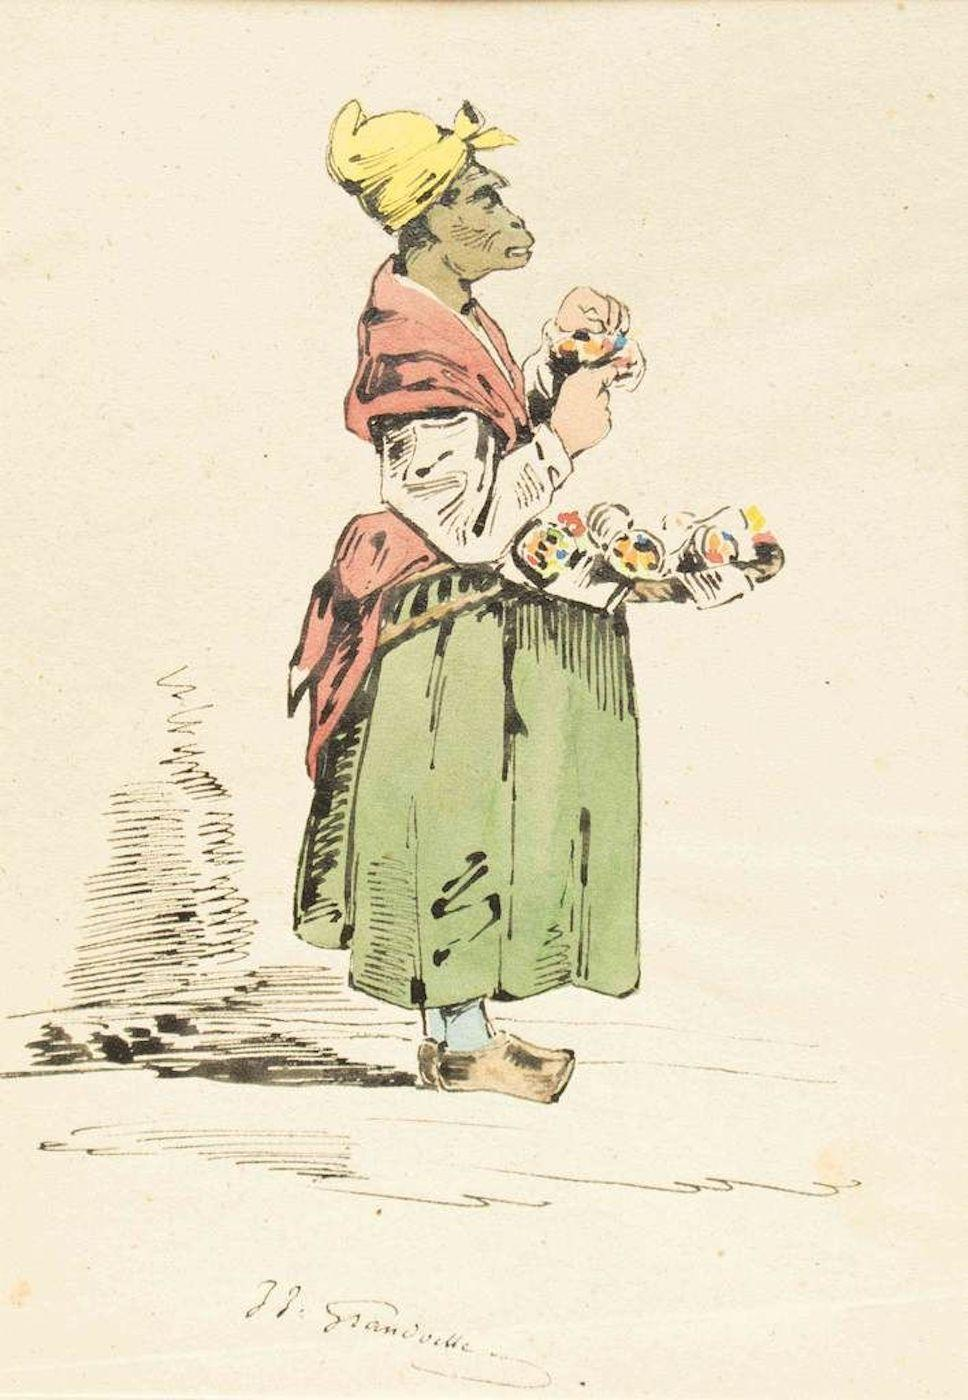 The Pedder - Original Ink Drawing and Watercolor by J.J. Grandville